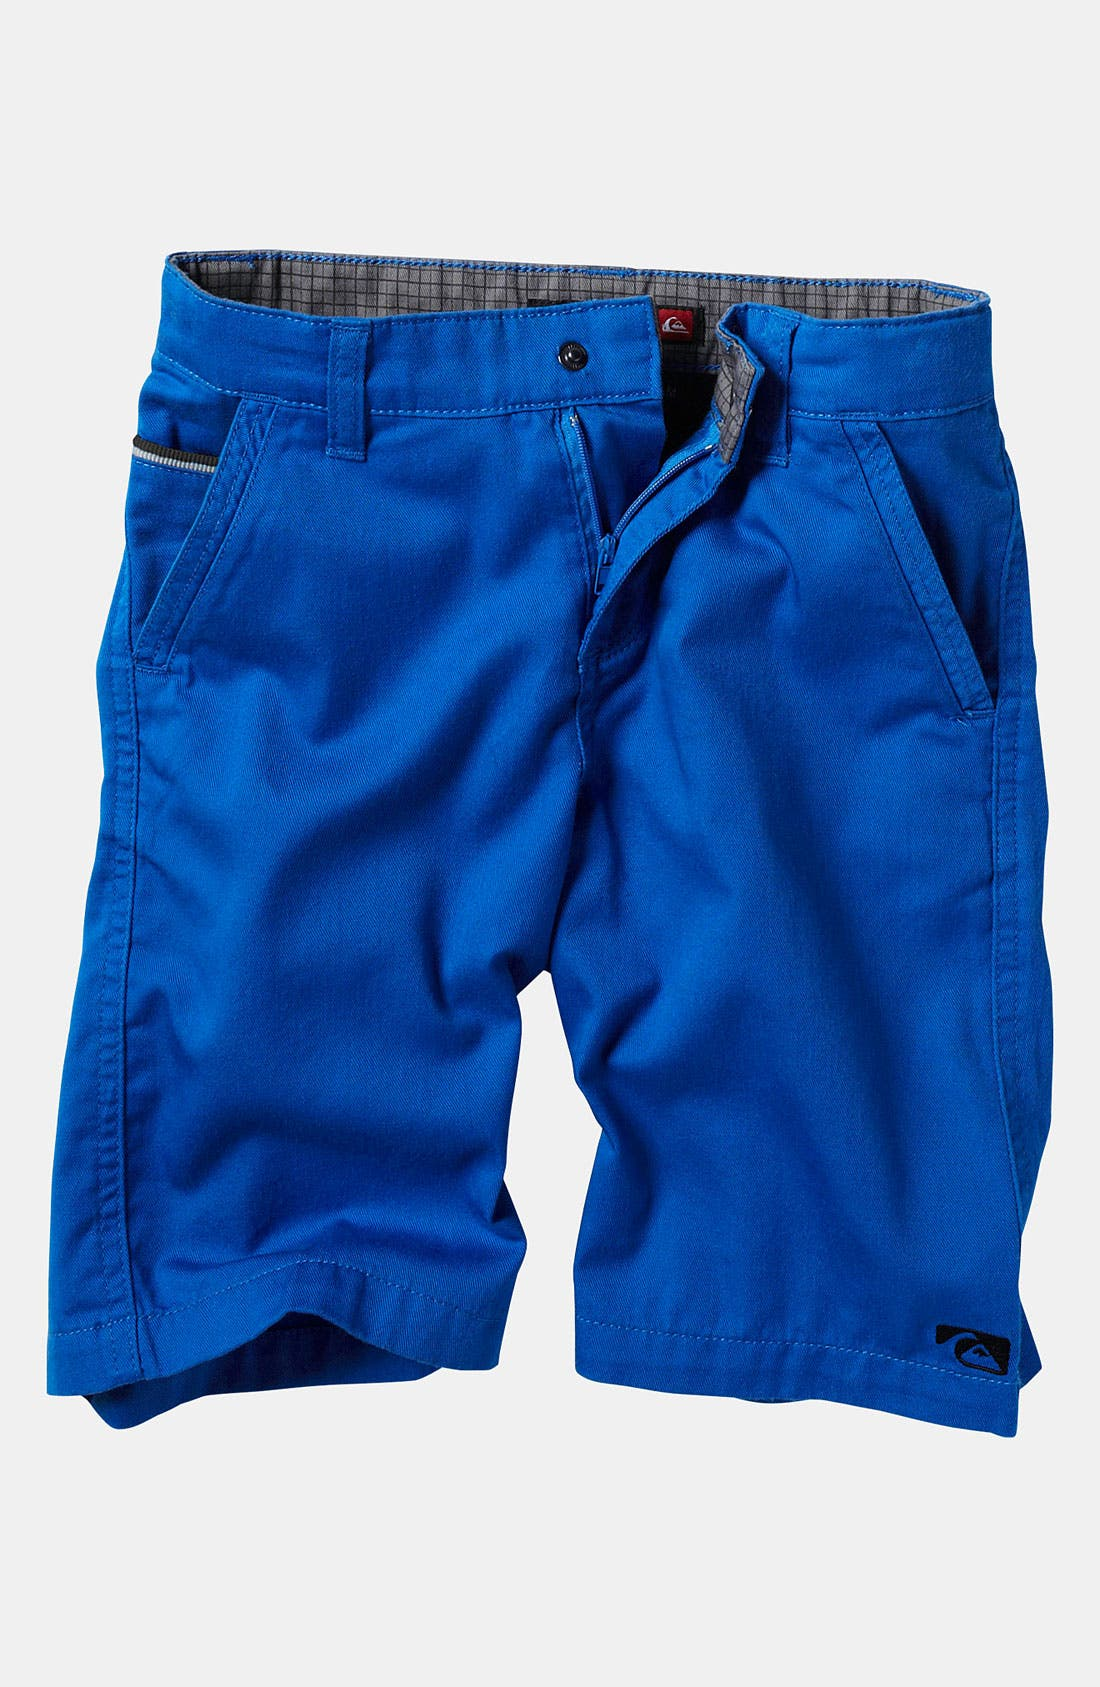 Alternate Image 1 Selected - Quiksilver 'All In' Shorts (Infant)